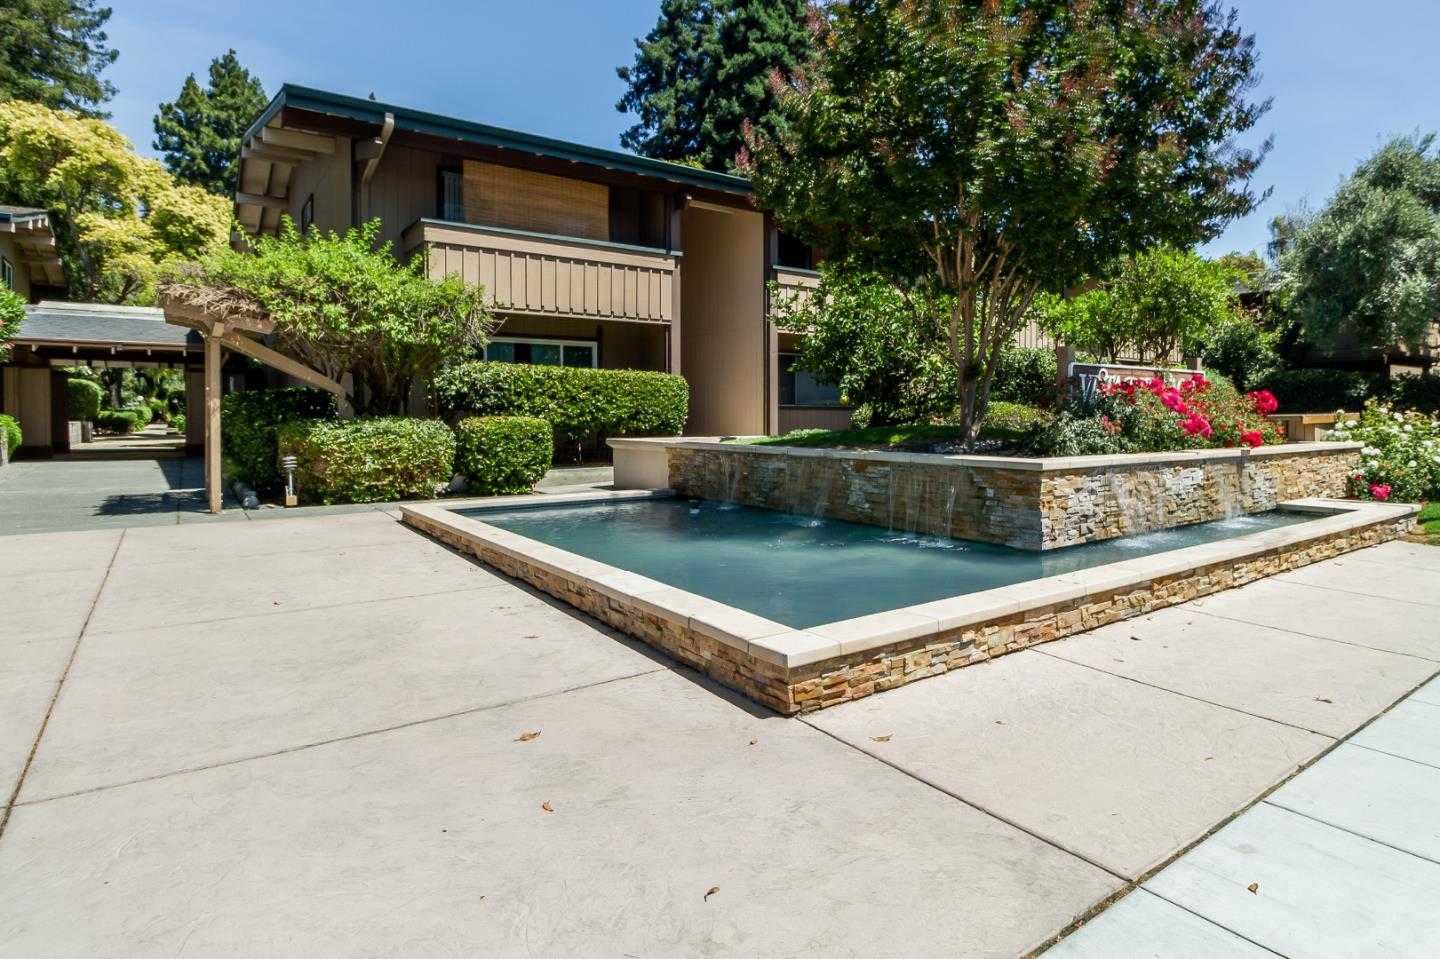 $582,500 - 1Br/1Ba -  for Sale in Santa Clara